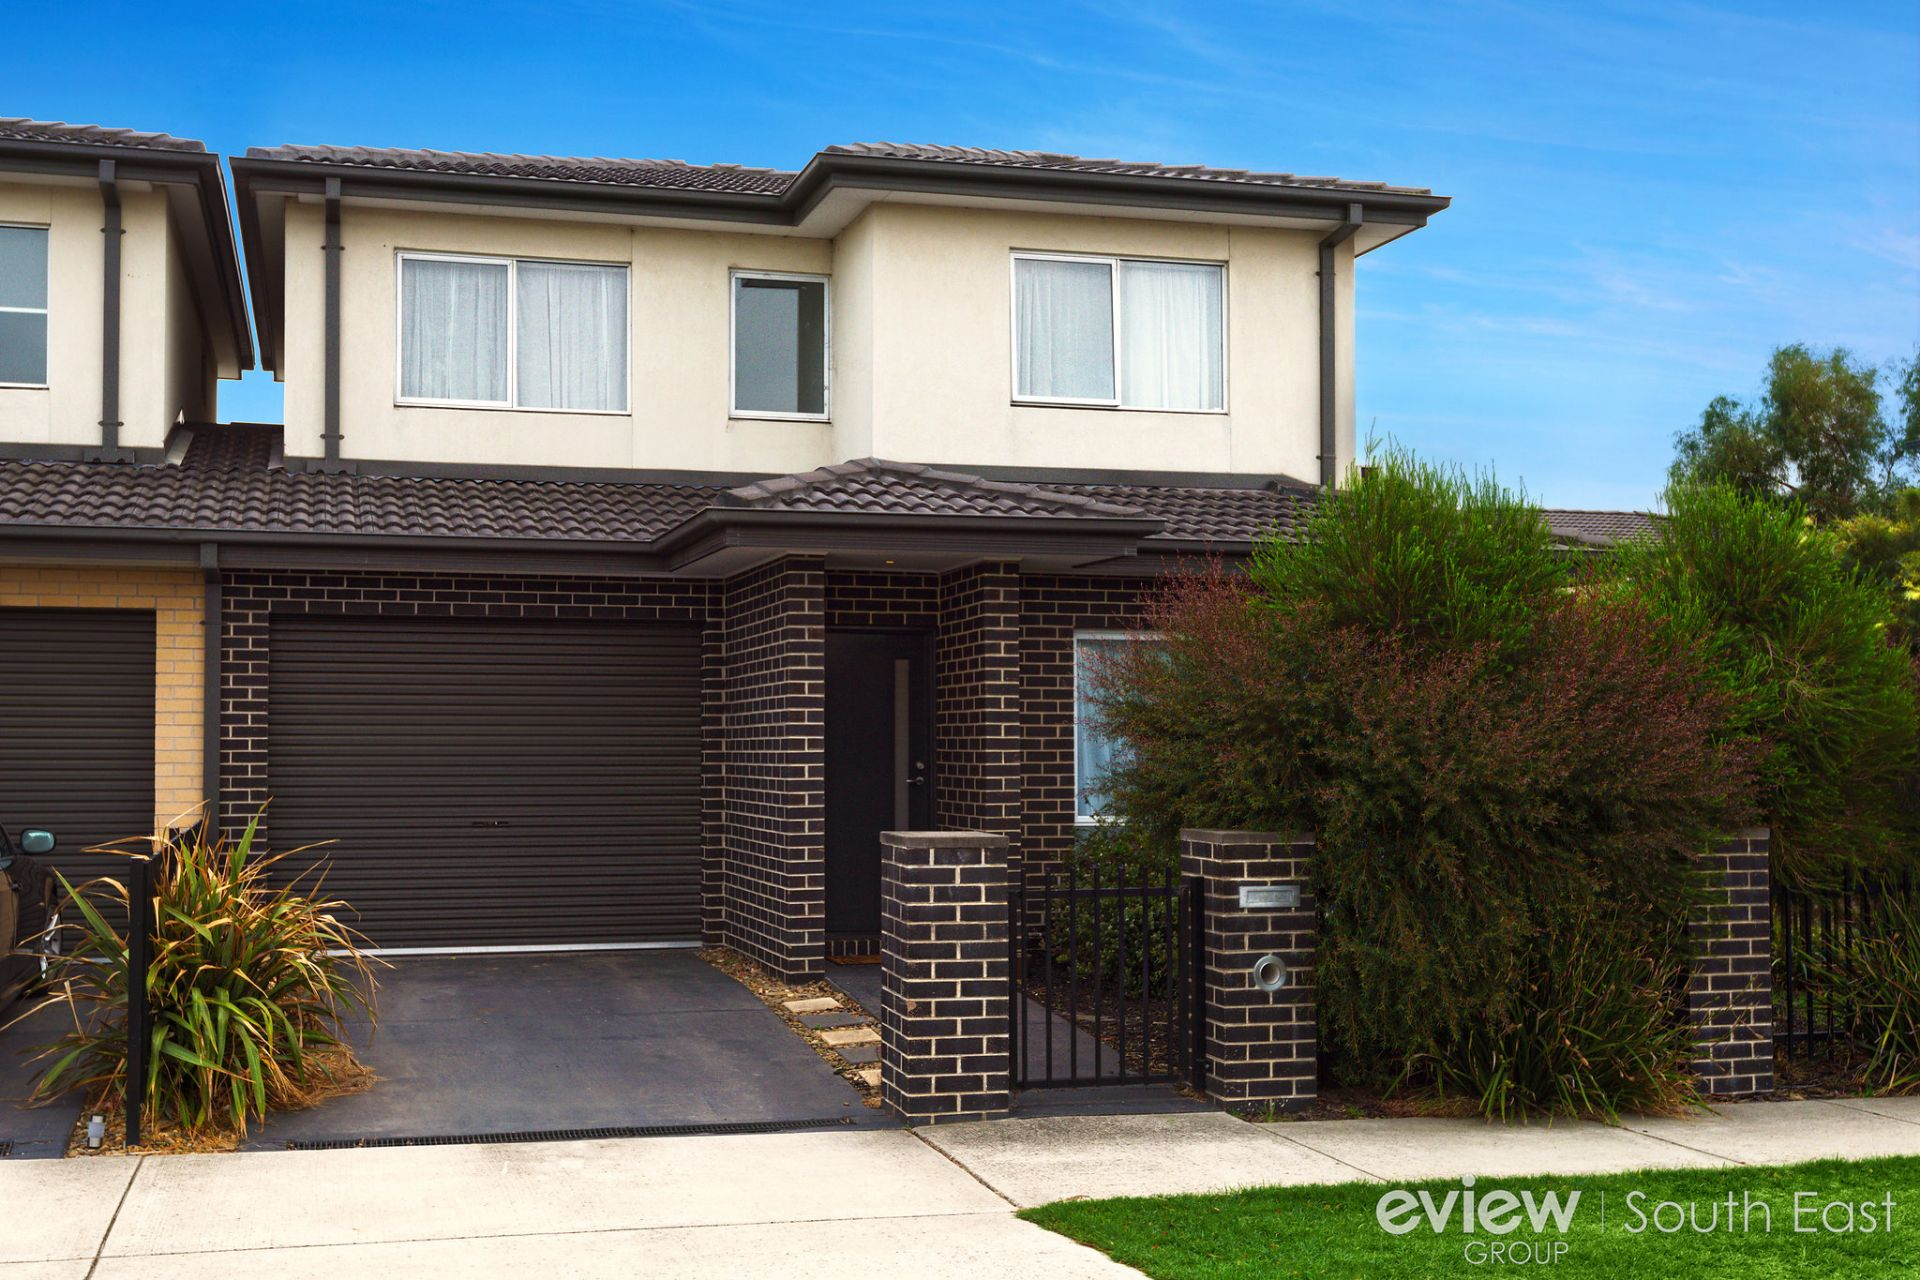 1/67 Brumbys Road, CARRUM DOWNS, VIC, 3201 - Image